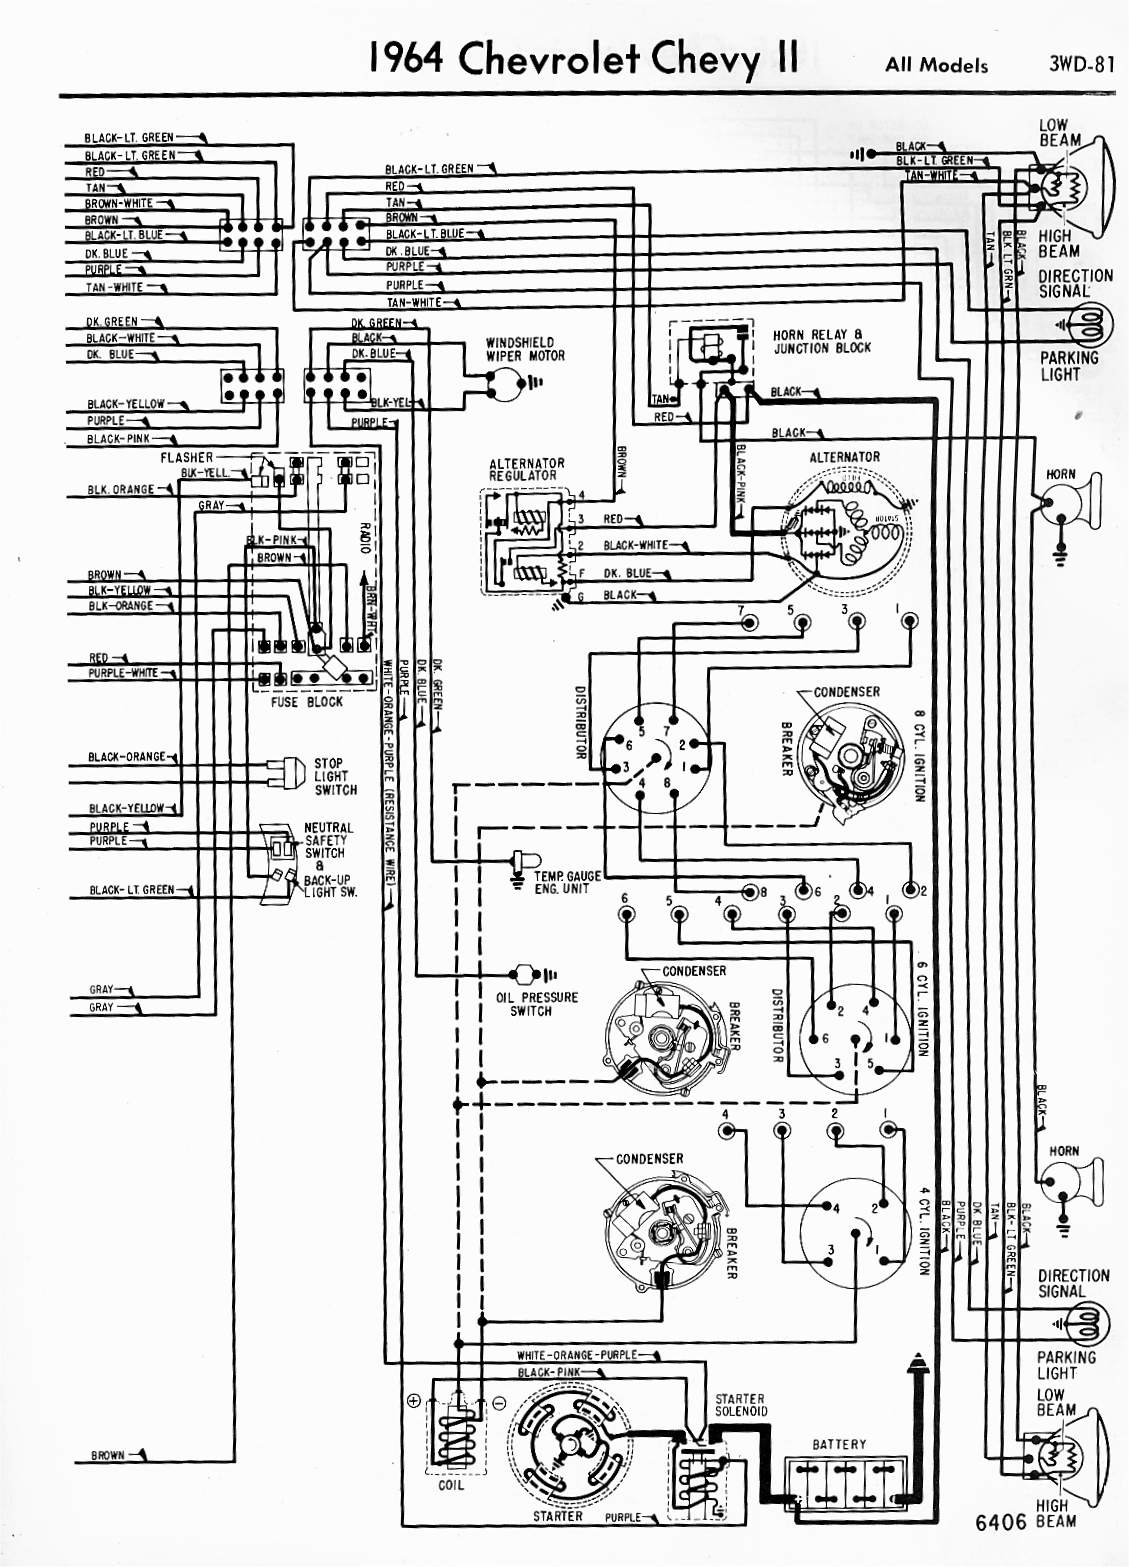 Find Out Here 2005 Impala Ignition Switch Wiring Diagram